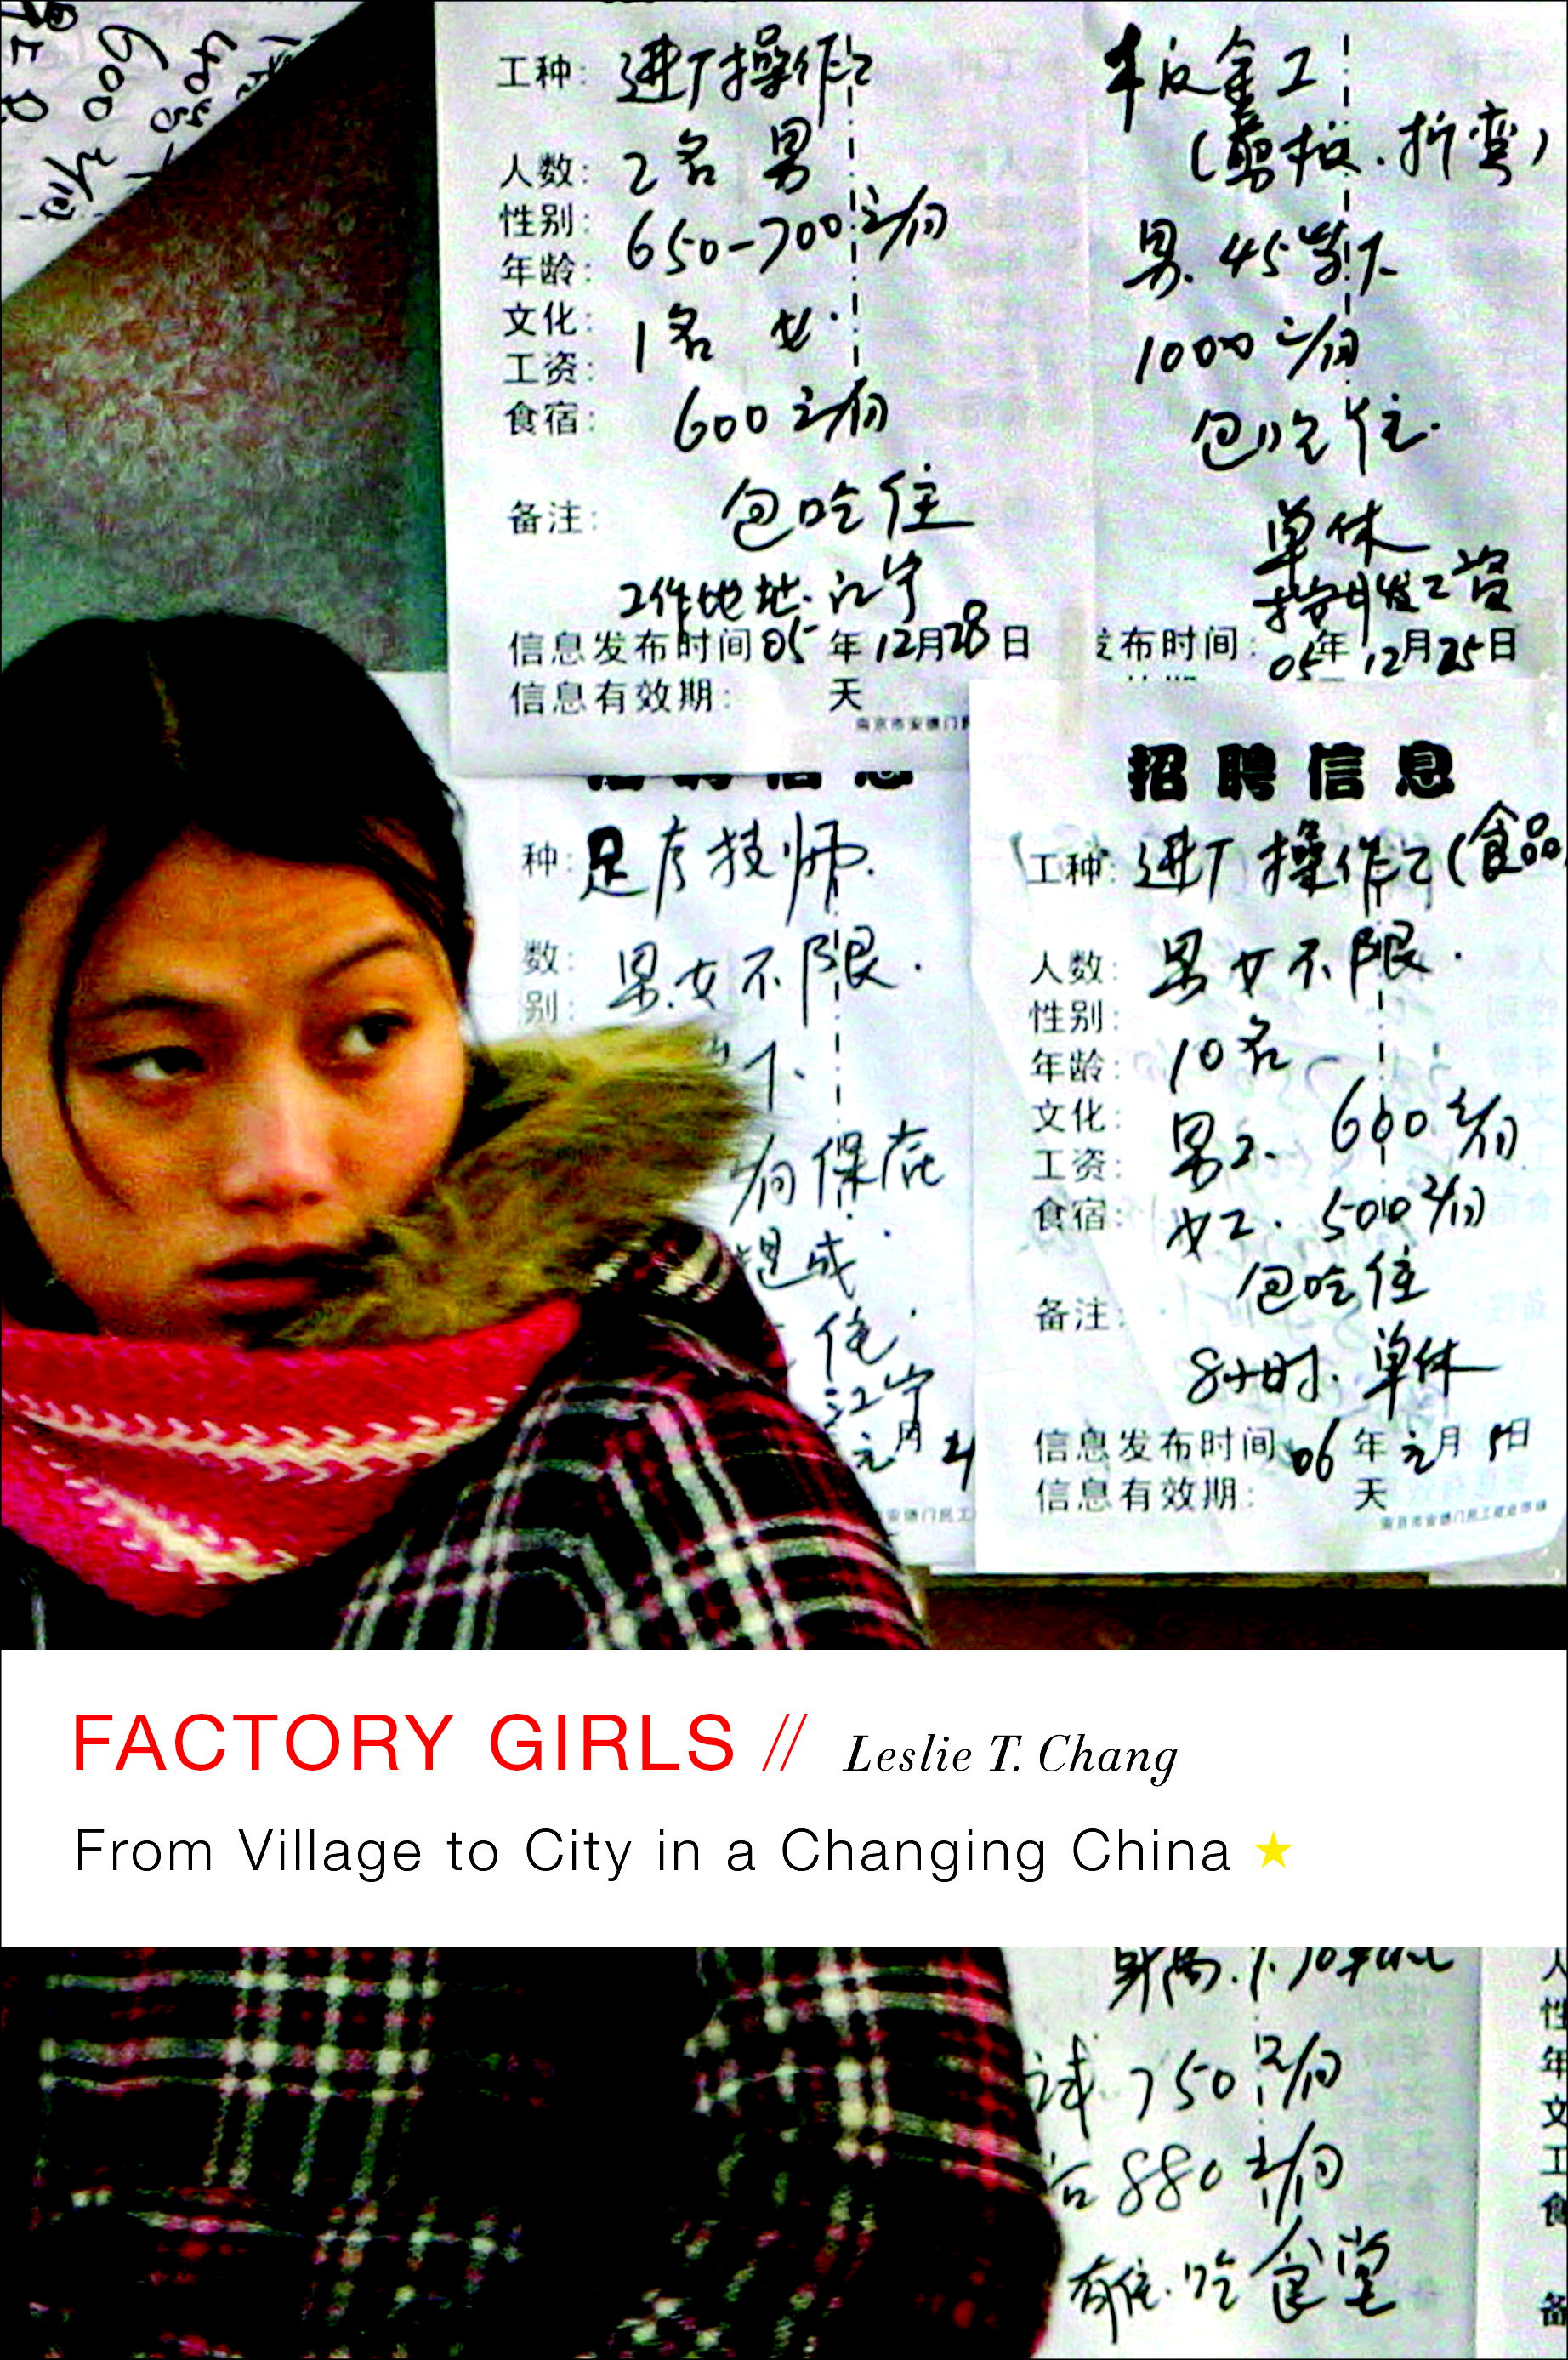 factorygirls